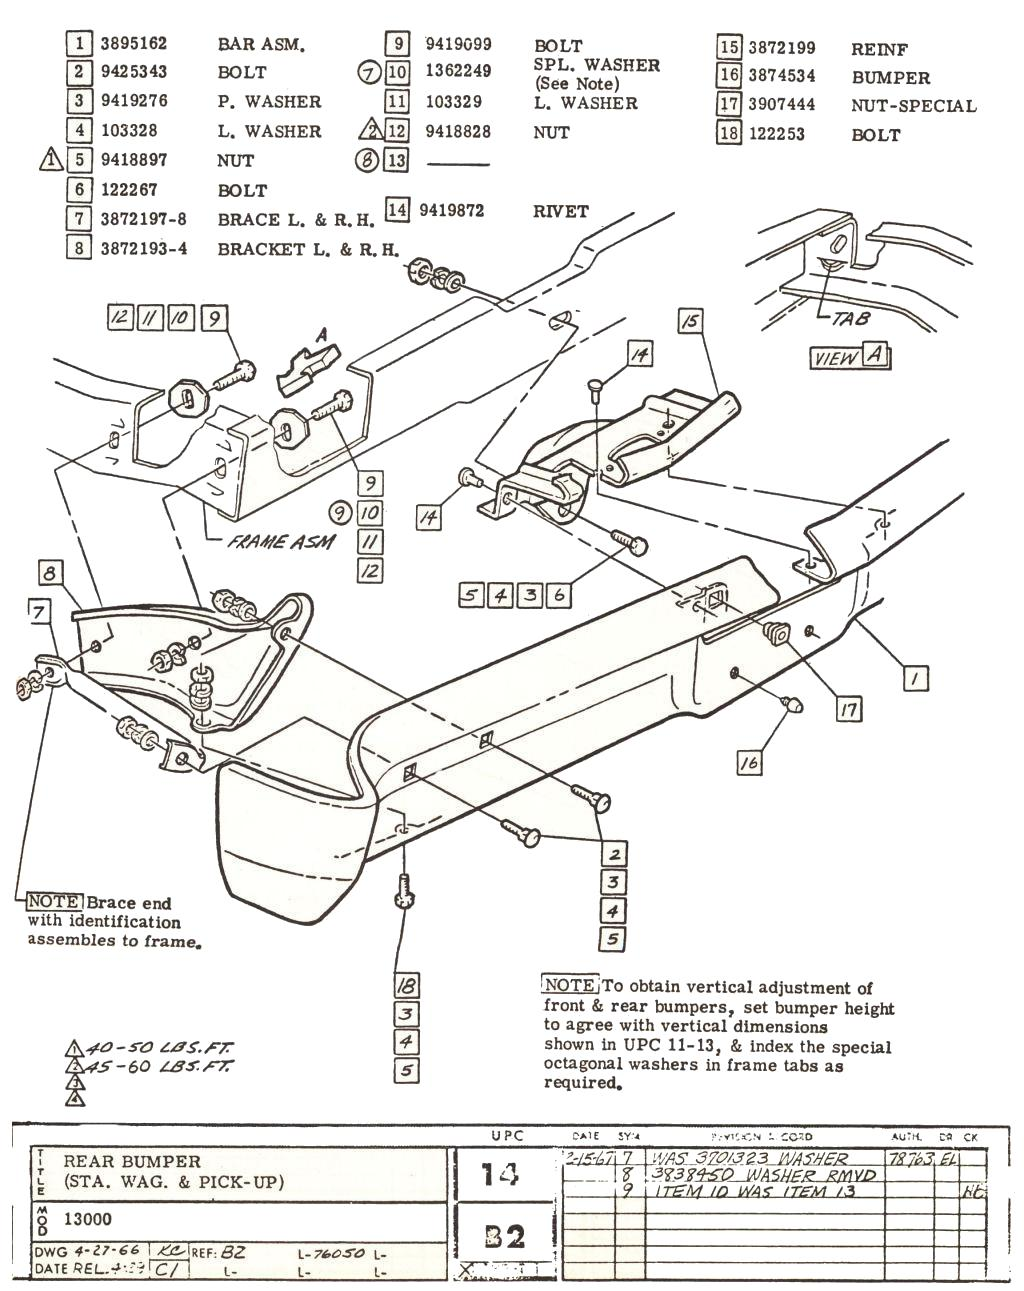 Chevelle Malibu Fuse Box Diagram